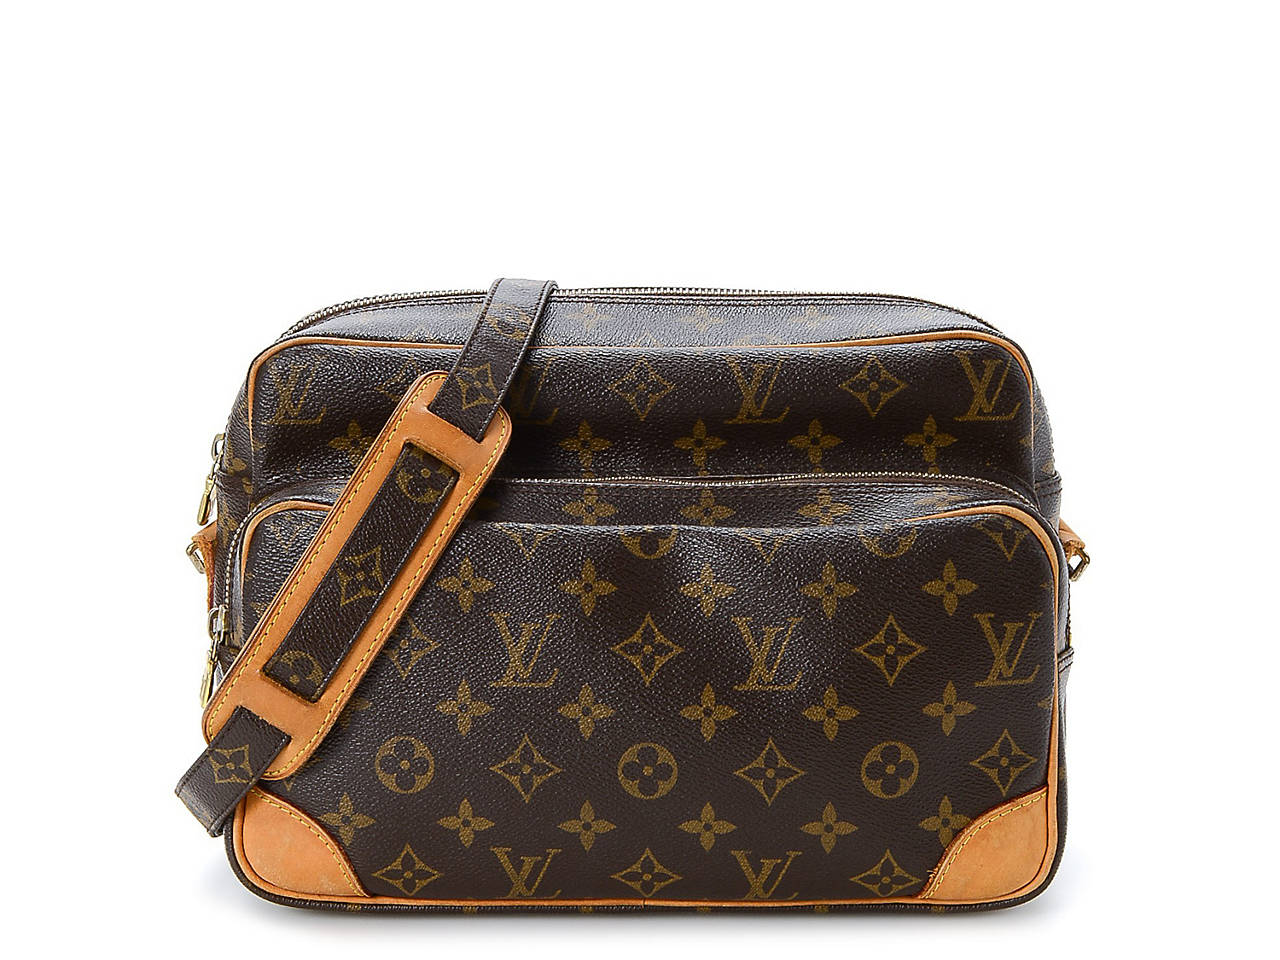 Louis Vuitton - Vintage Luxury Nil 28 Crossbody Bag Women s Handbags ... ed9012e05f58